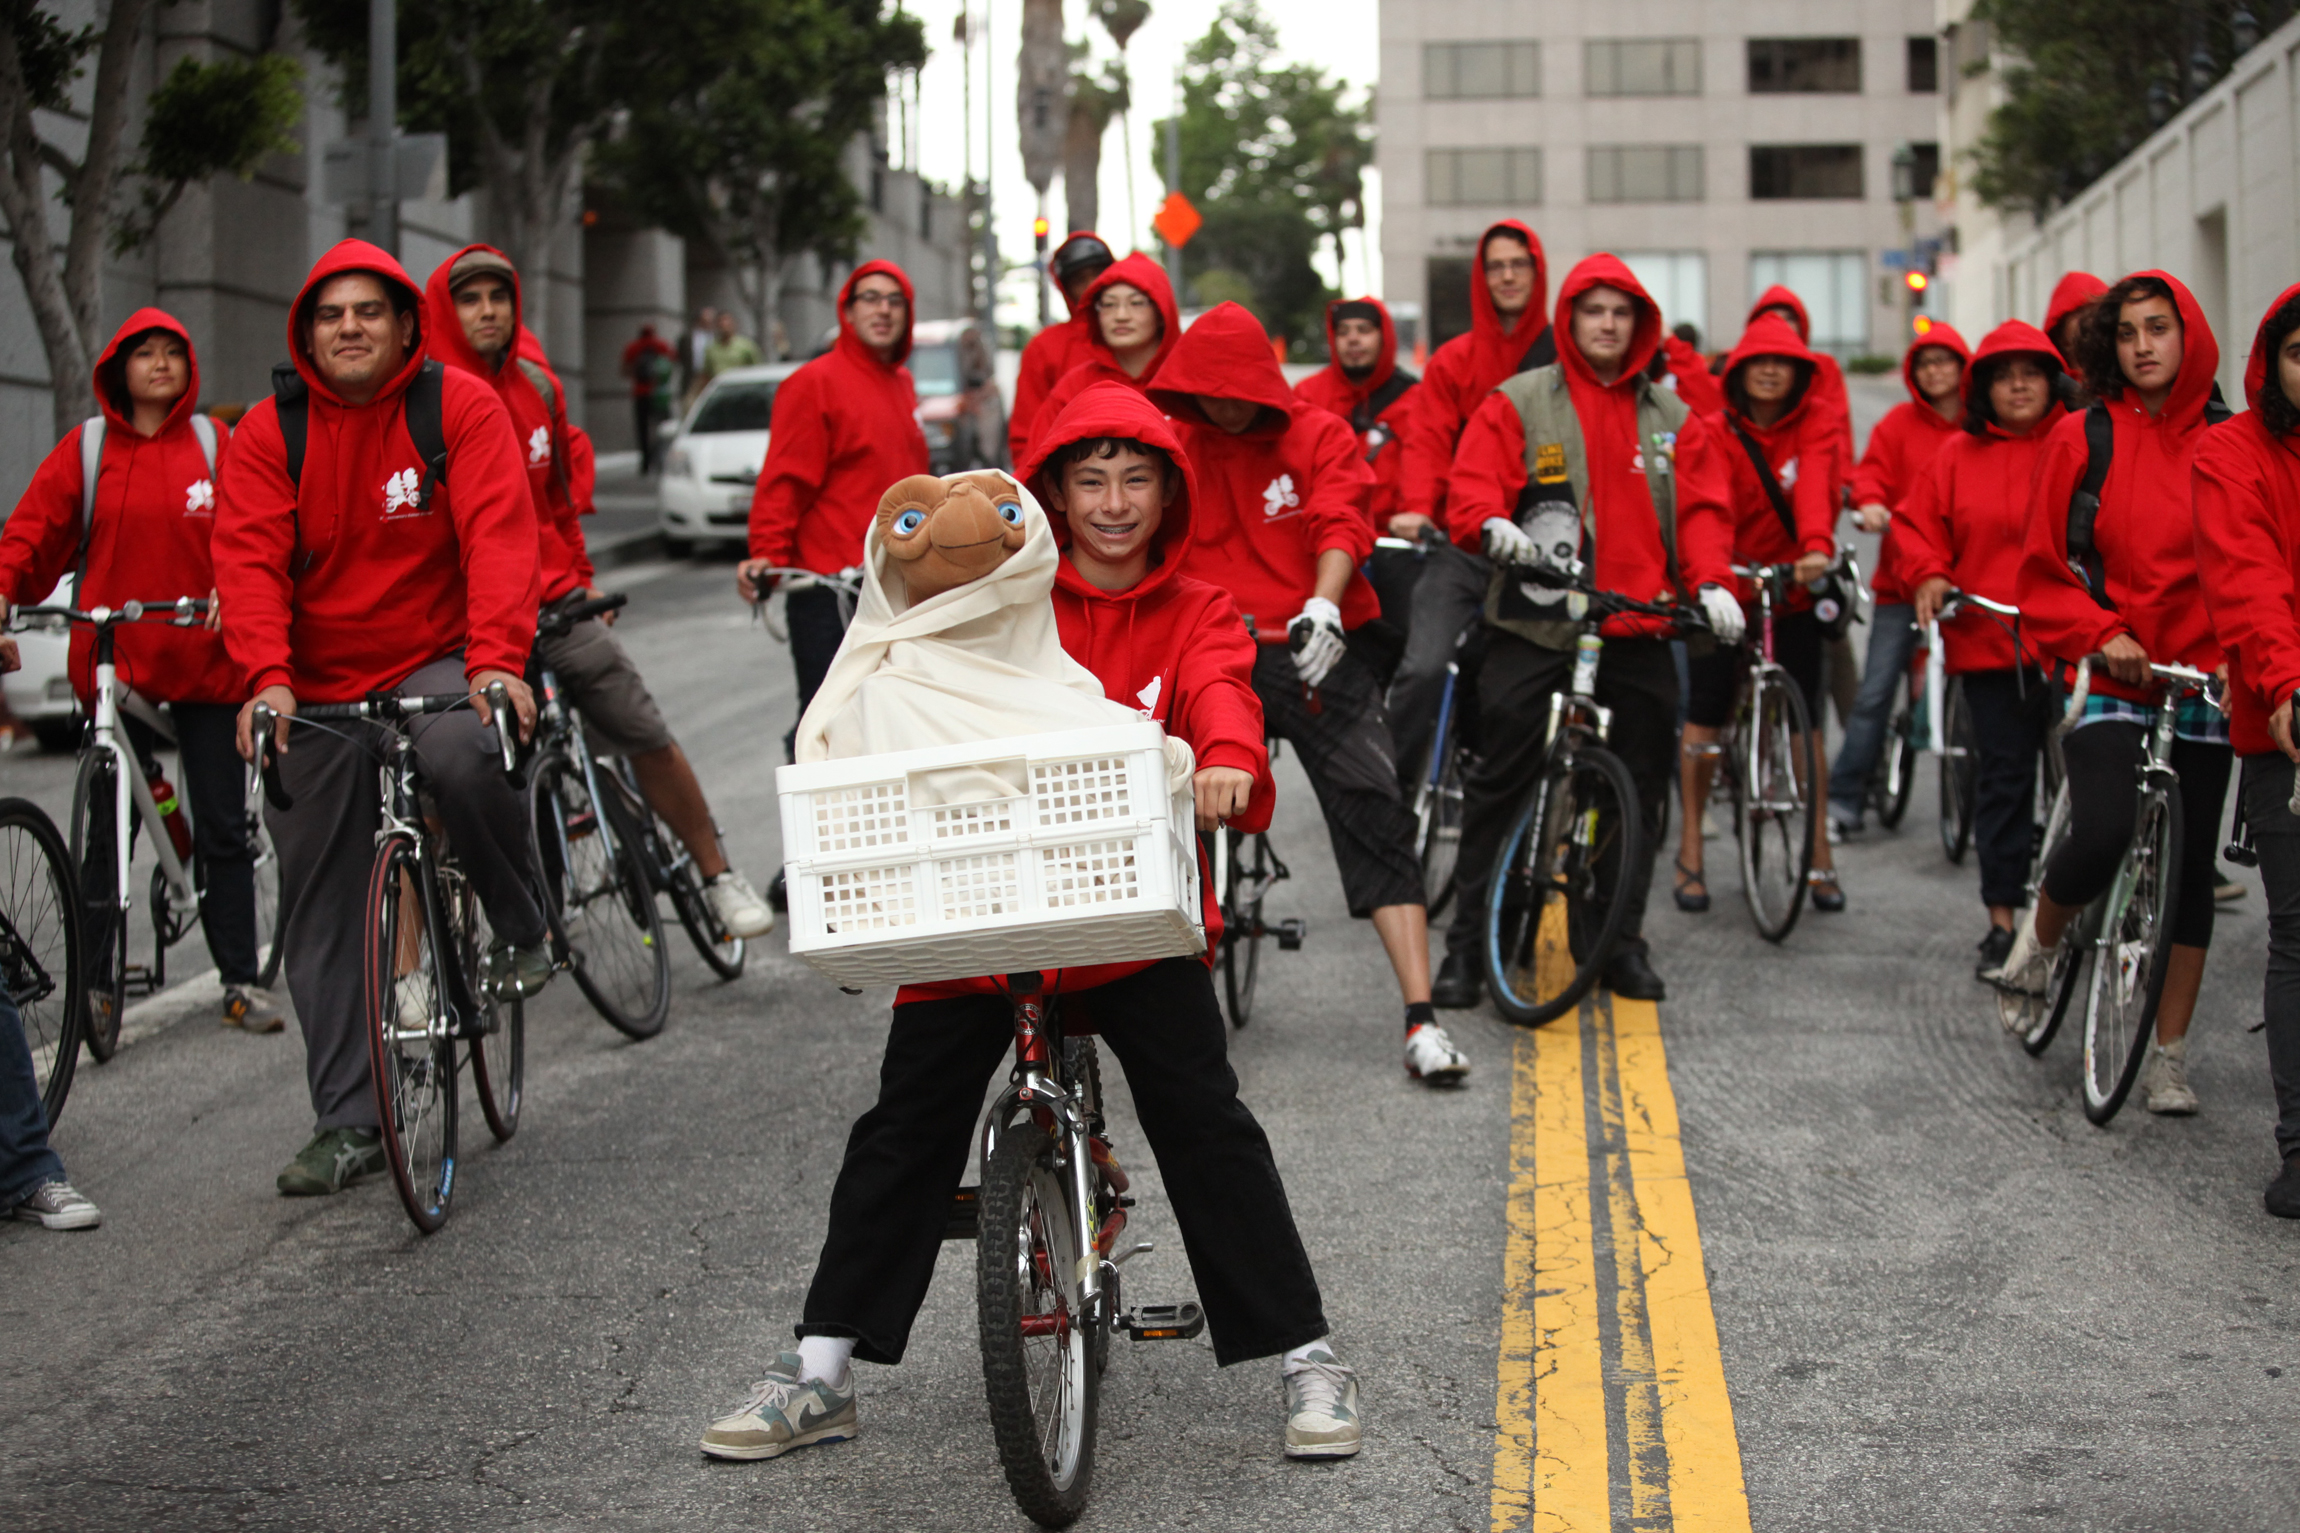 Fans Celebrate E.T. at LA Film Fest Outdoor Screening